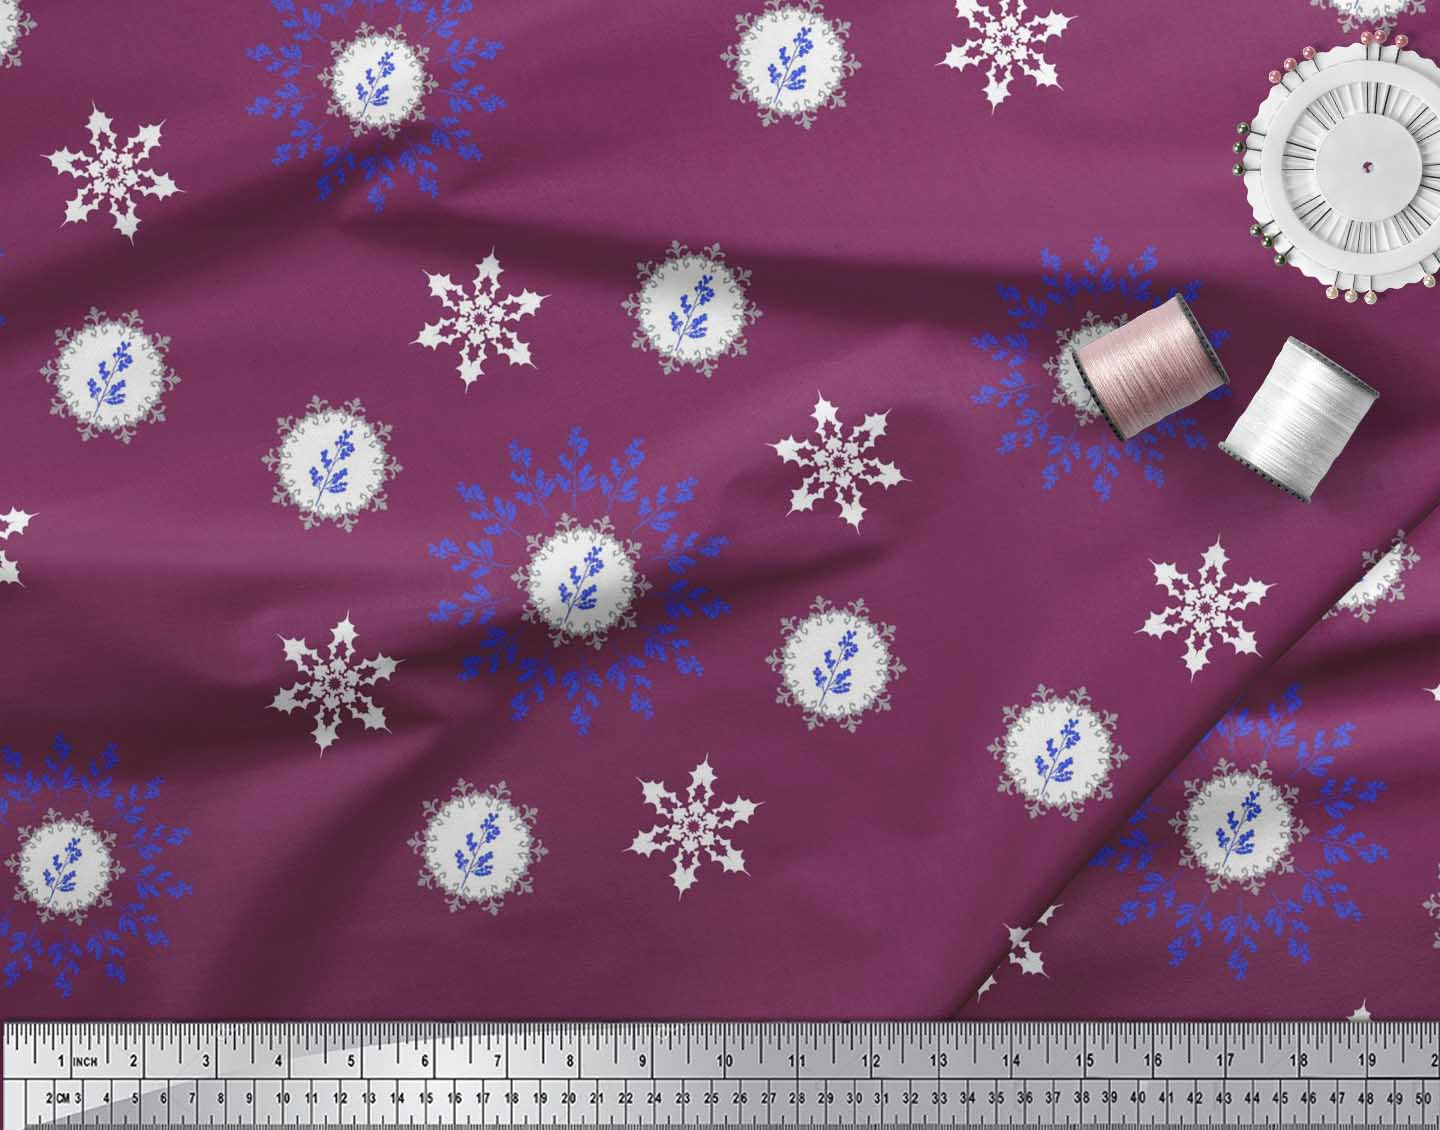 Soimoi-Fabric-Berries-amp-Damask-Decorative-Printed-Craft-Fabric-bty-DC-513A thumbnail 18